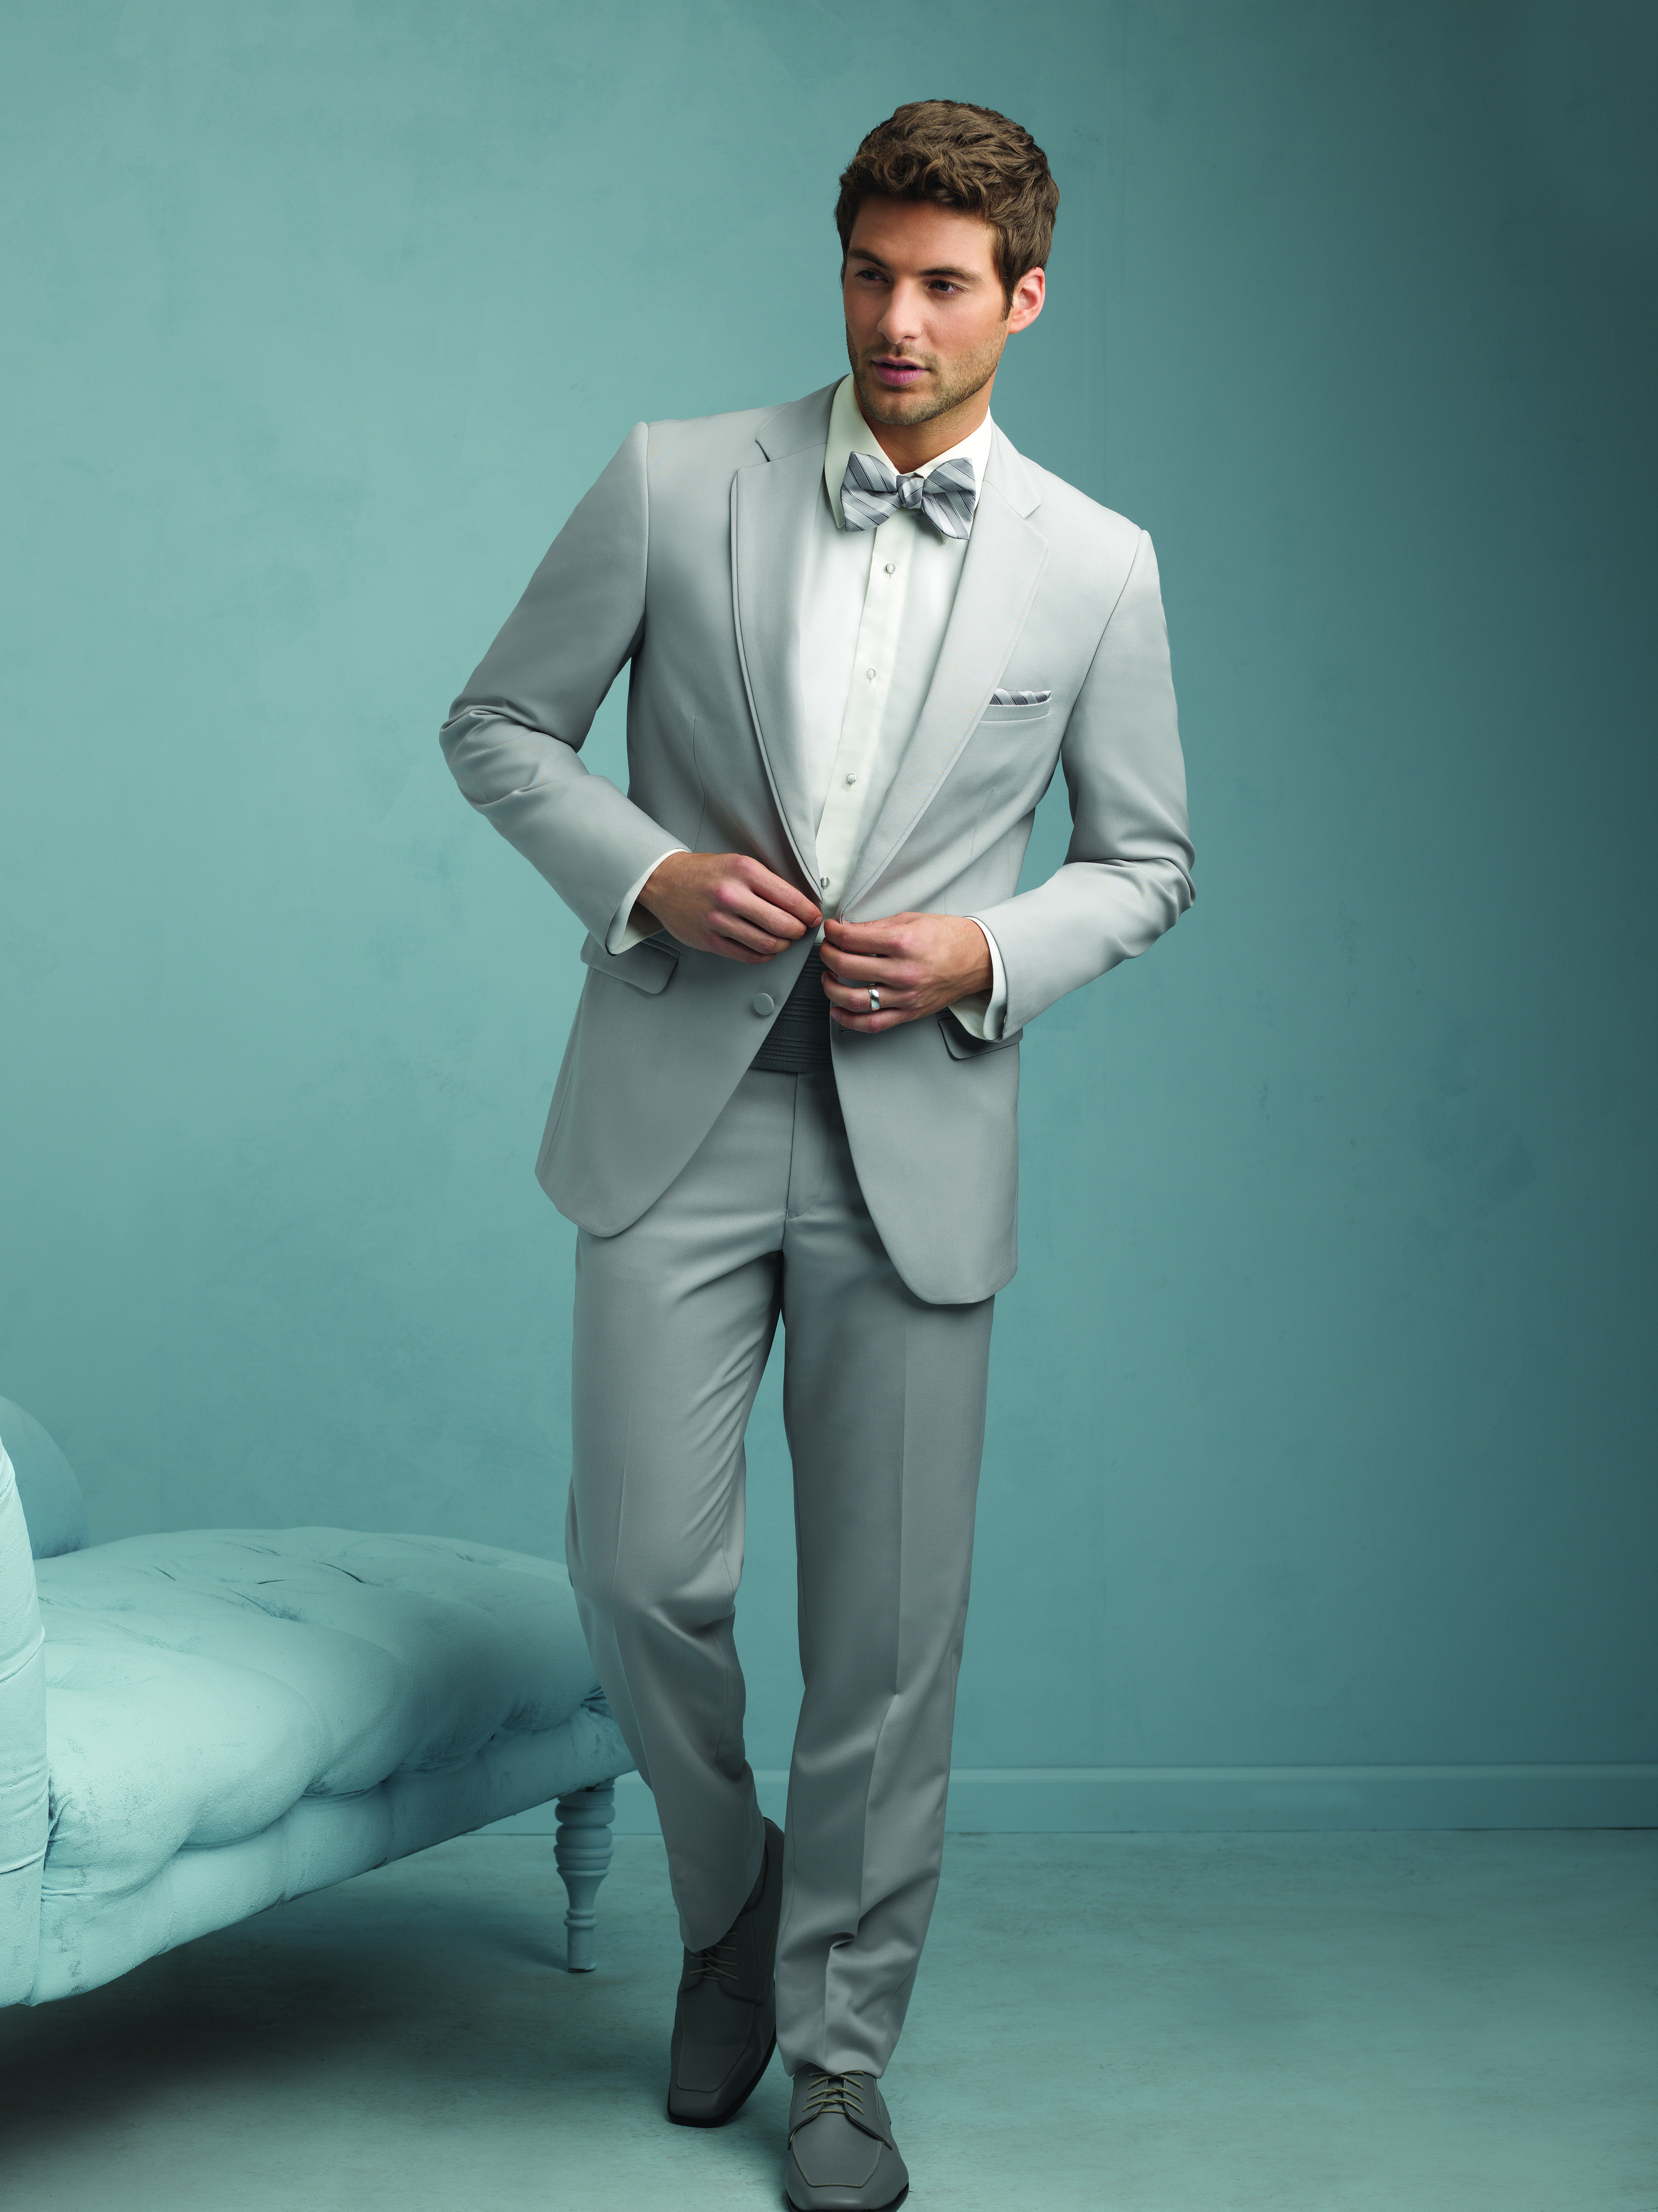 Squires Formalwear - Weddings - Tuxedos - Formalwear - Allure Men ...